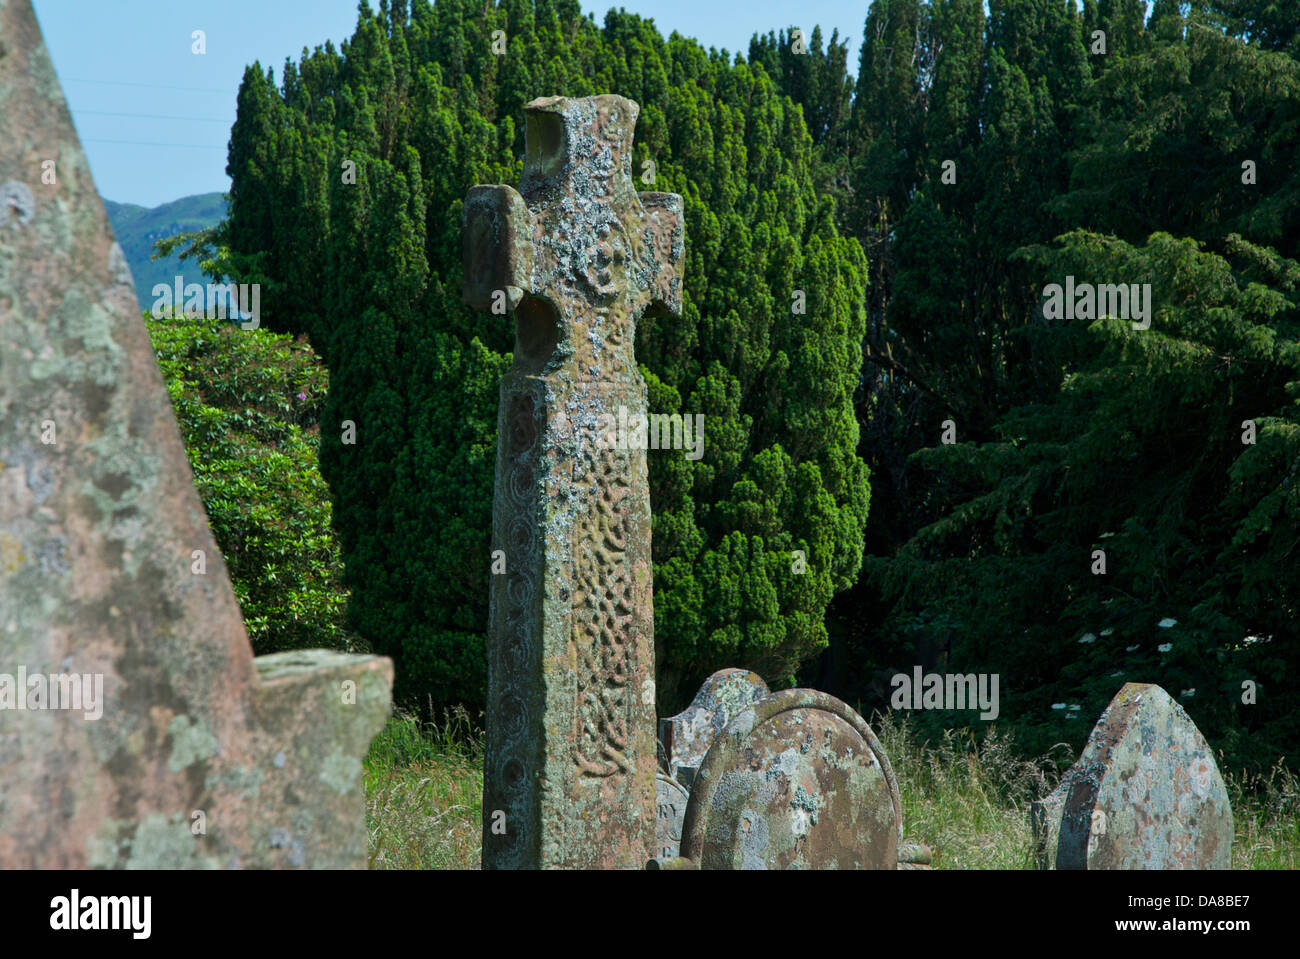 The 9th century cross at St Paul's Church, Irton, near Eskdale Green, West Cumbria, England UK - Stock Image